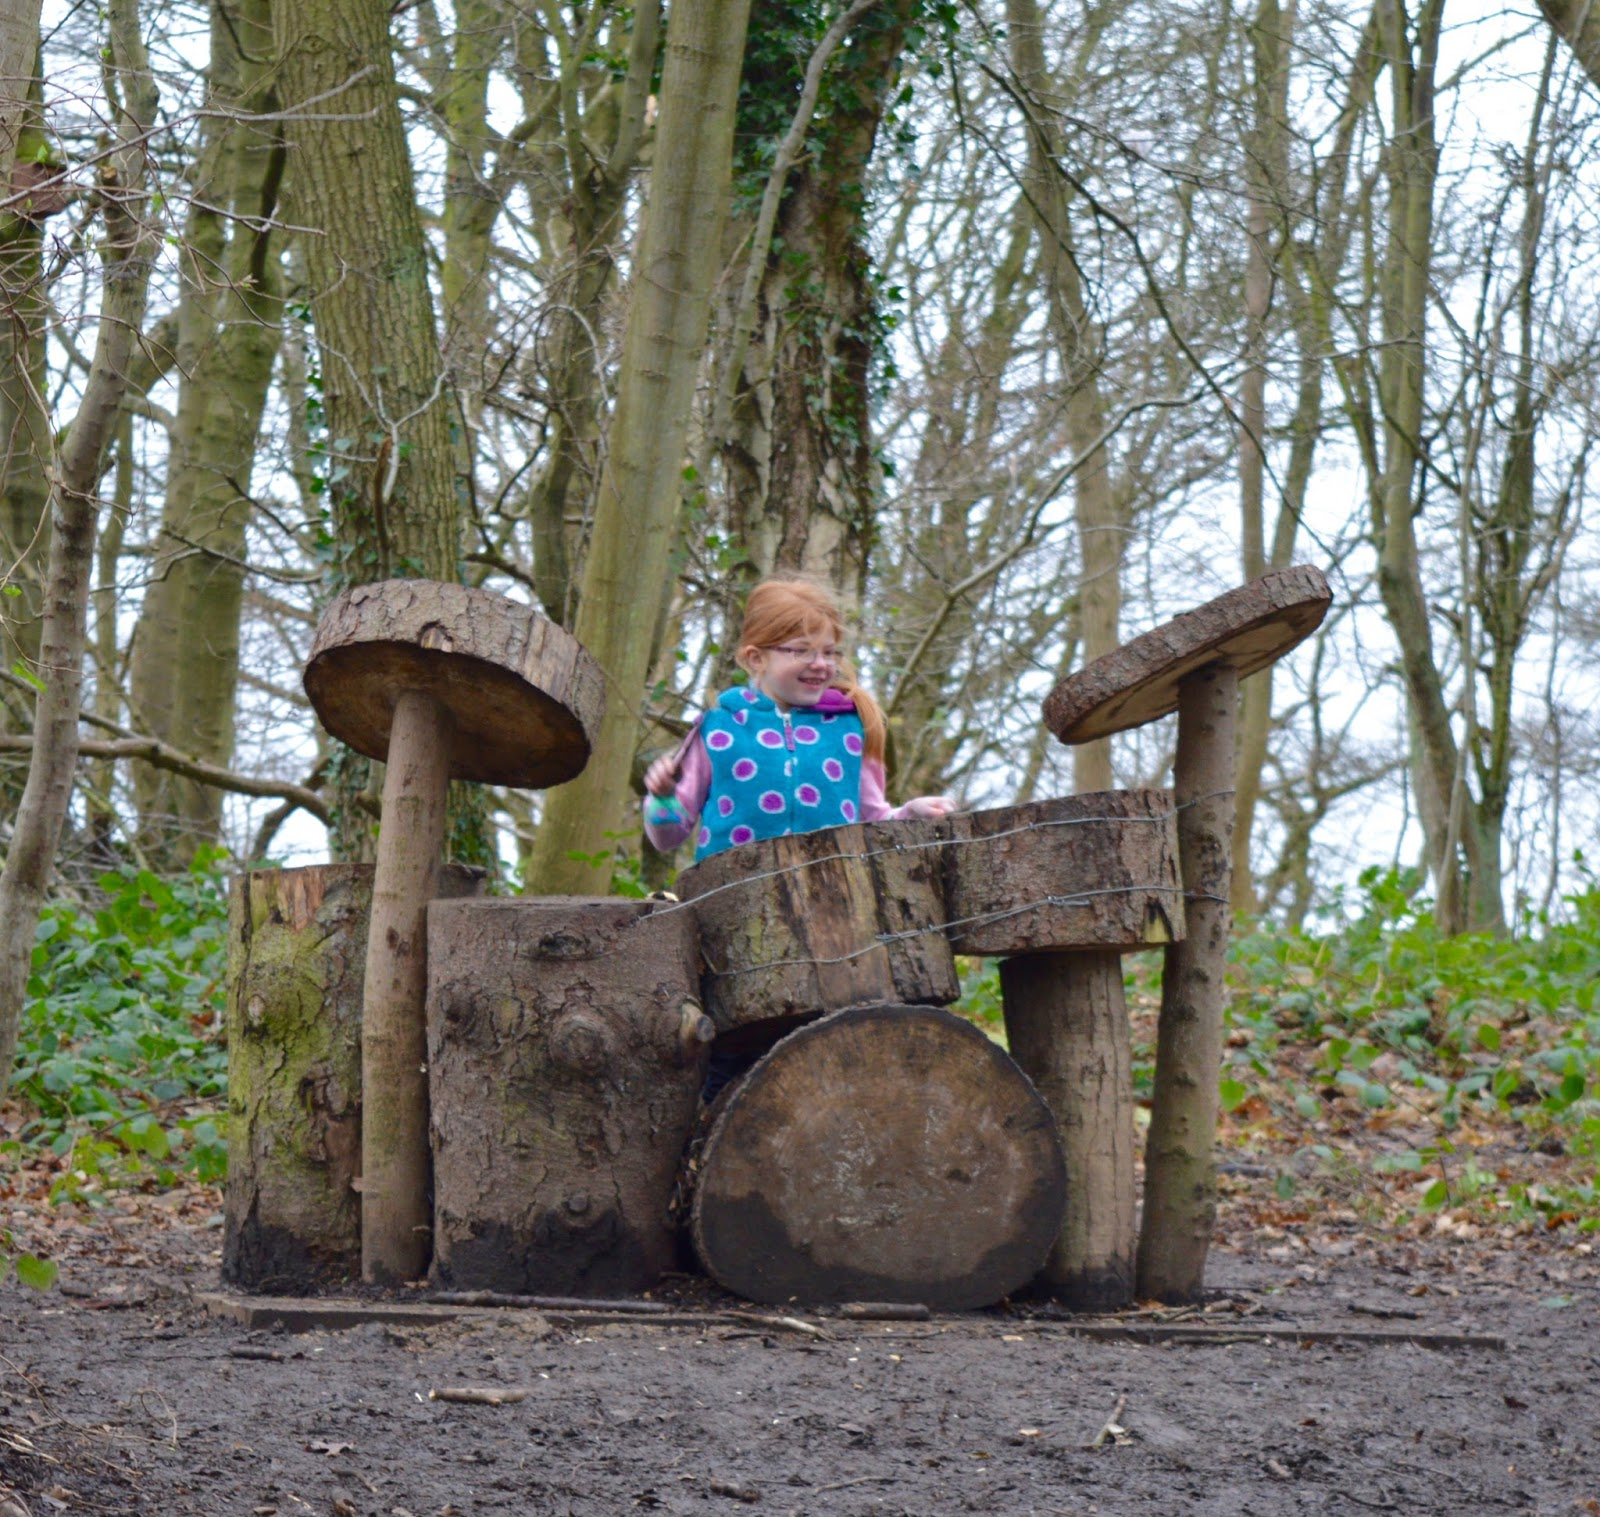 50+ Family Walks & Trails to try across North East England  - Plessey Woods